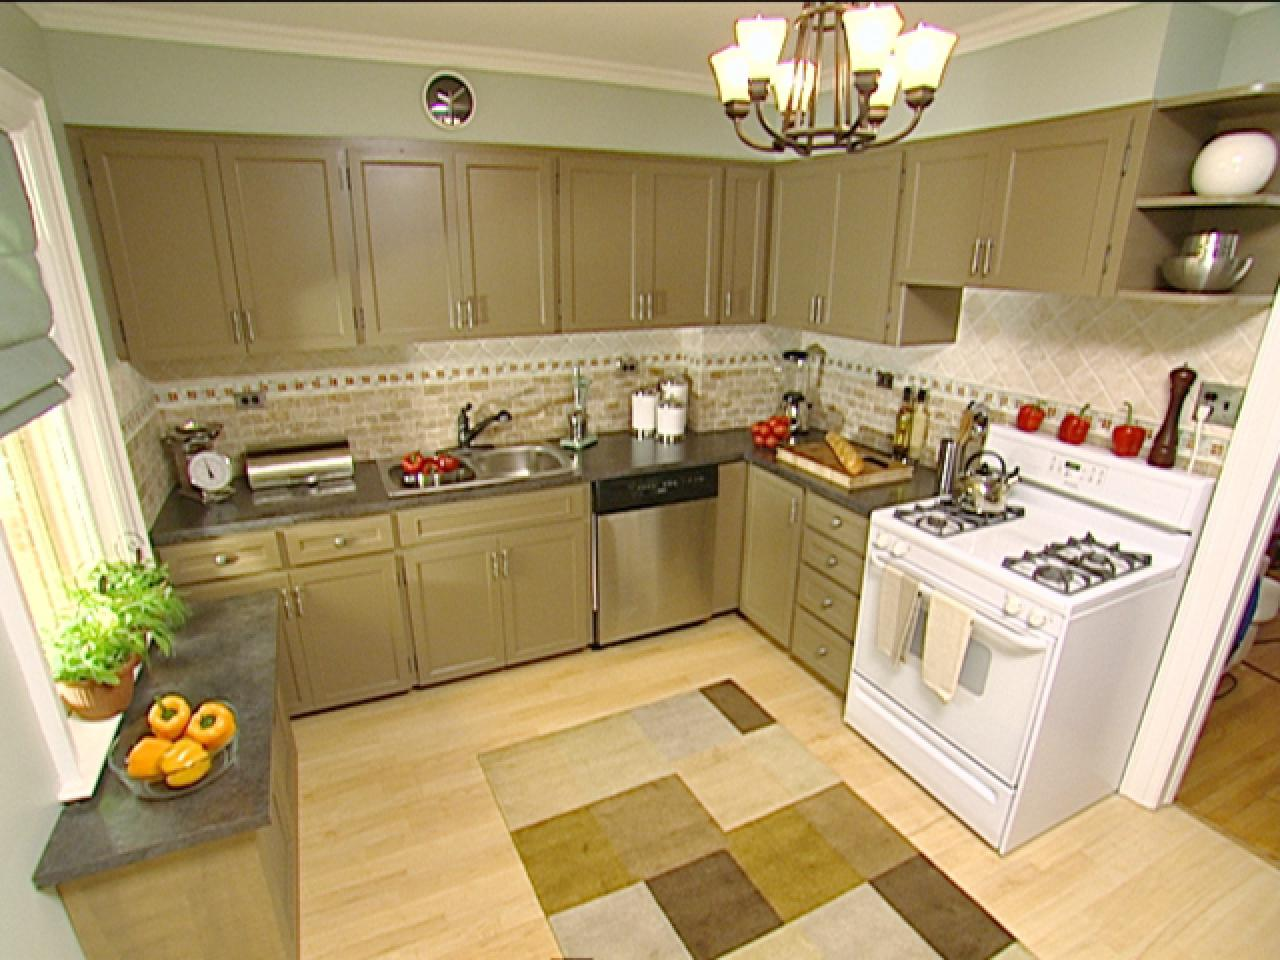 Color enhances family friendly kitchen hgtv Kitchen cabinet colors 2016